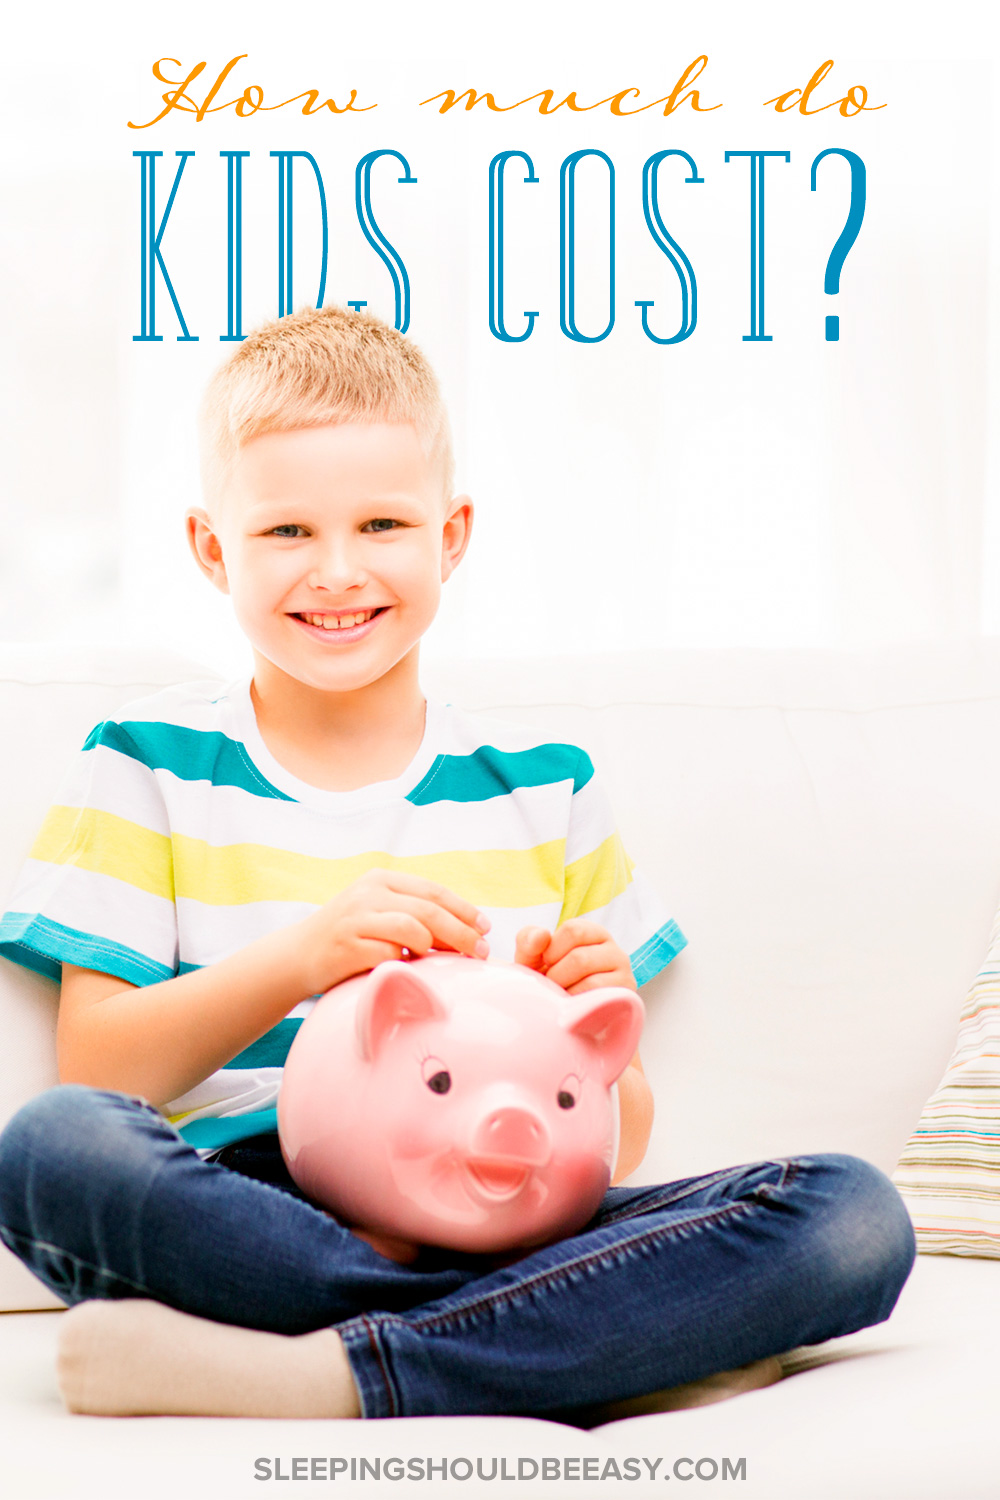 Kids are expensive, but exactly how much do kids cost? Chime in to discuss the cost of children and your family finances.